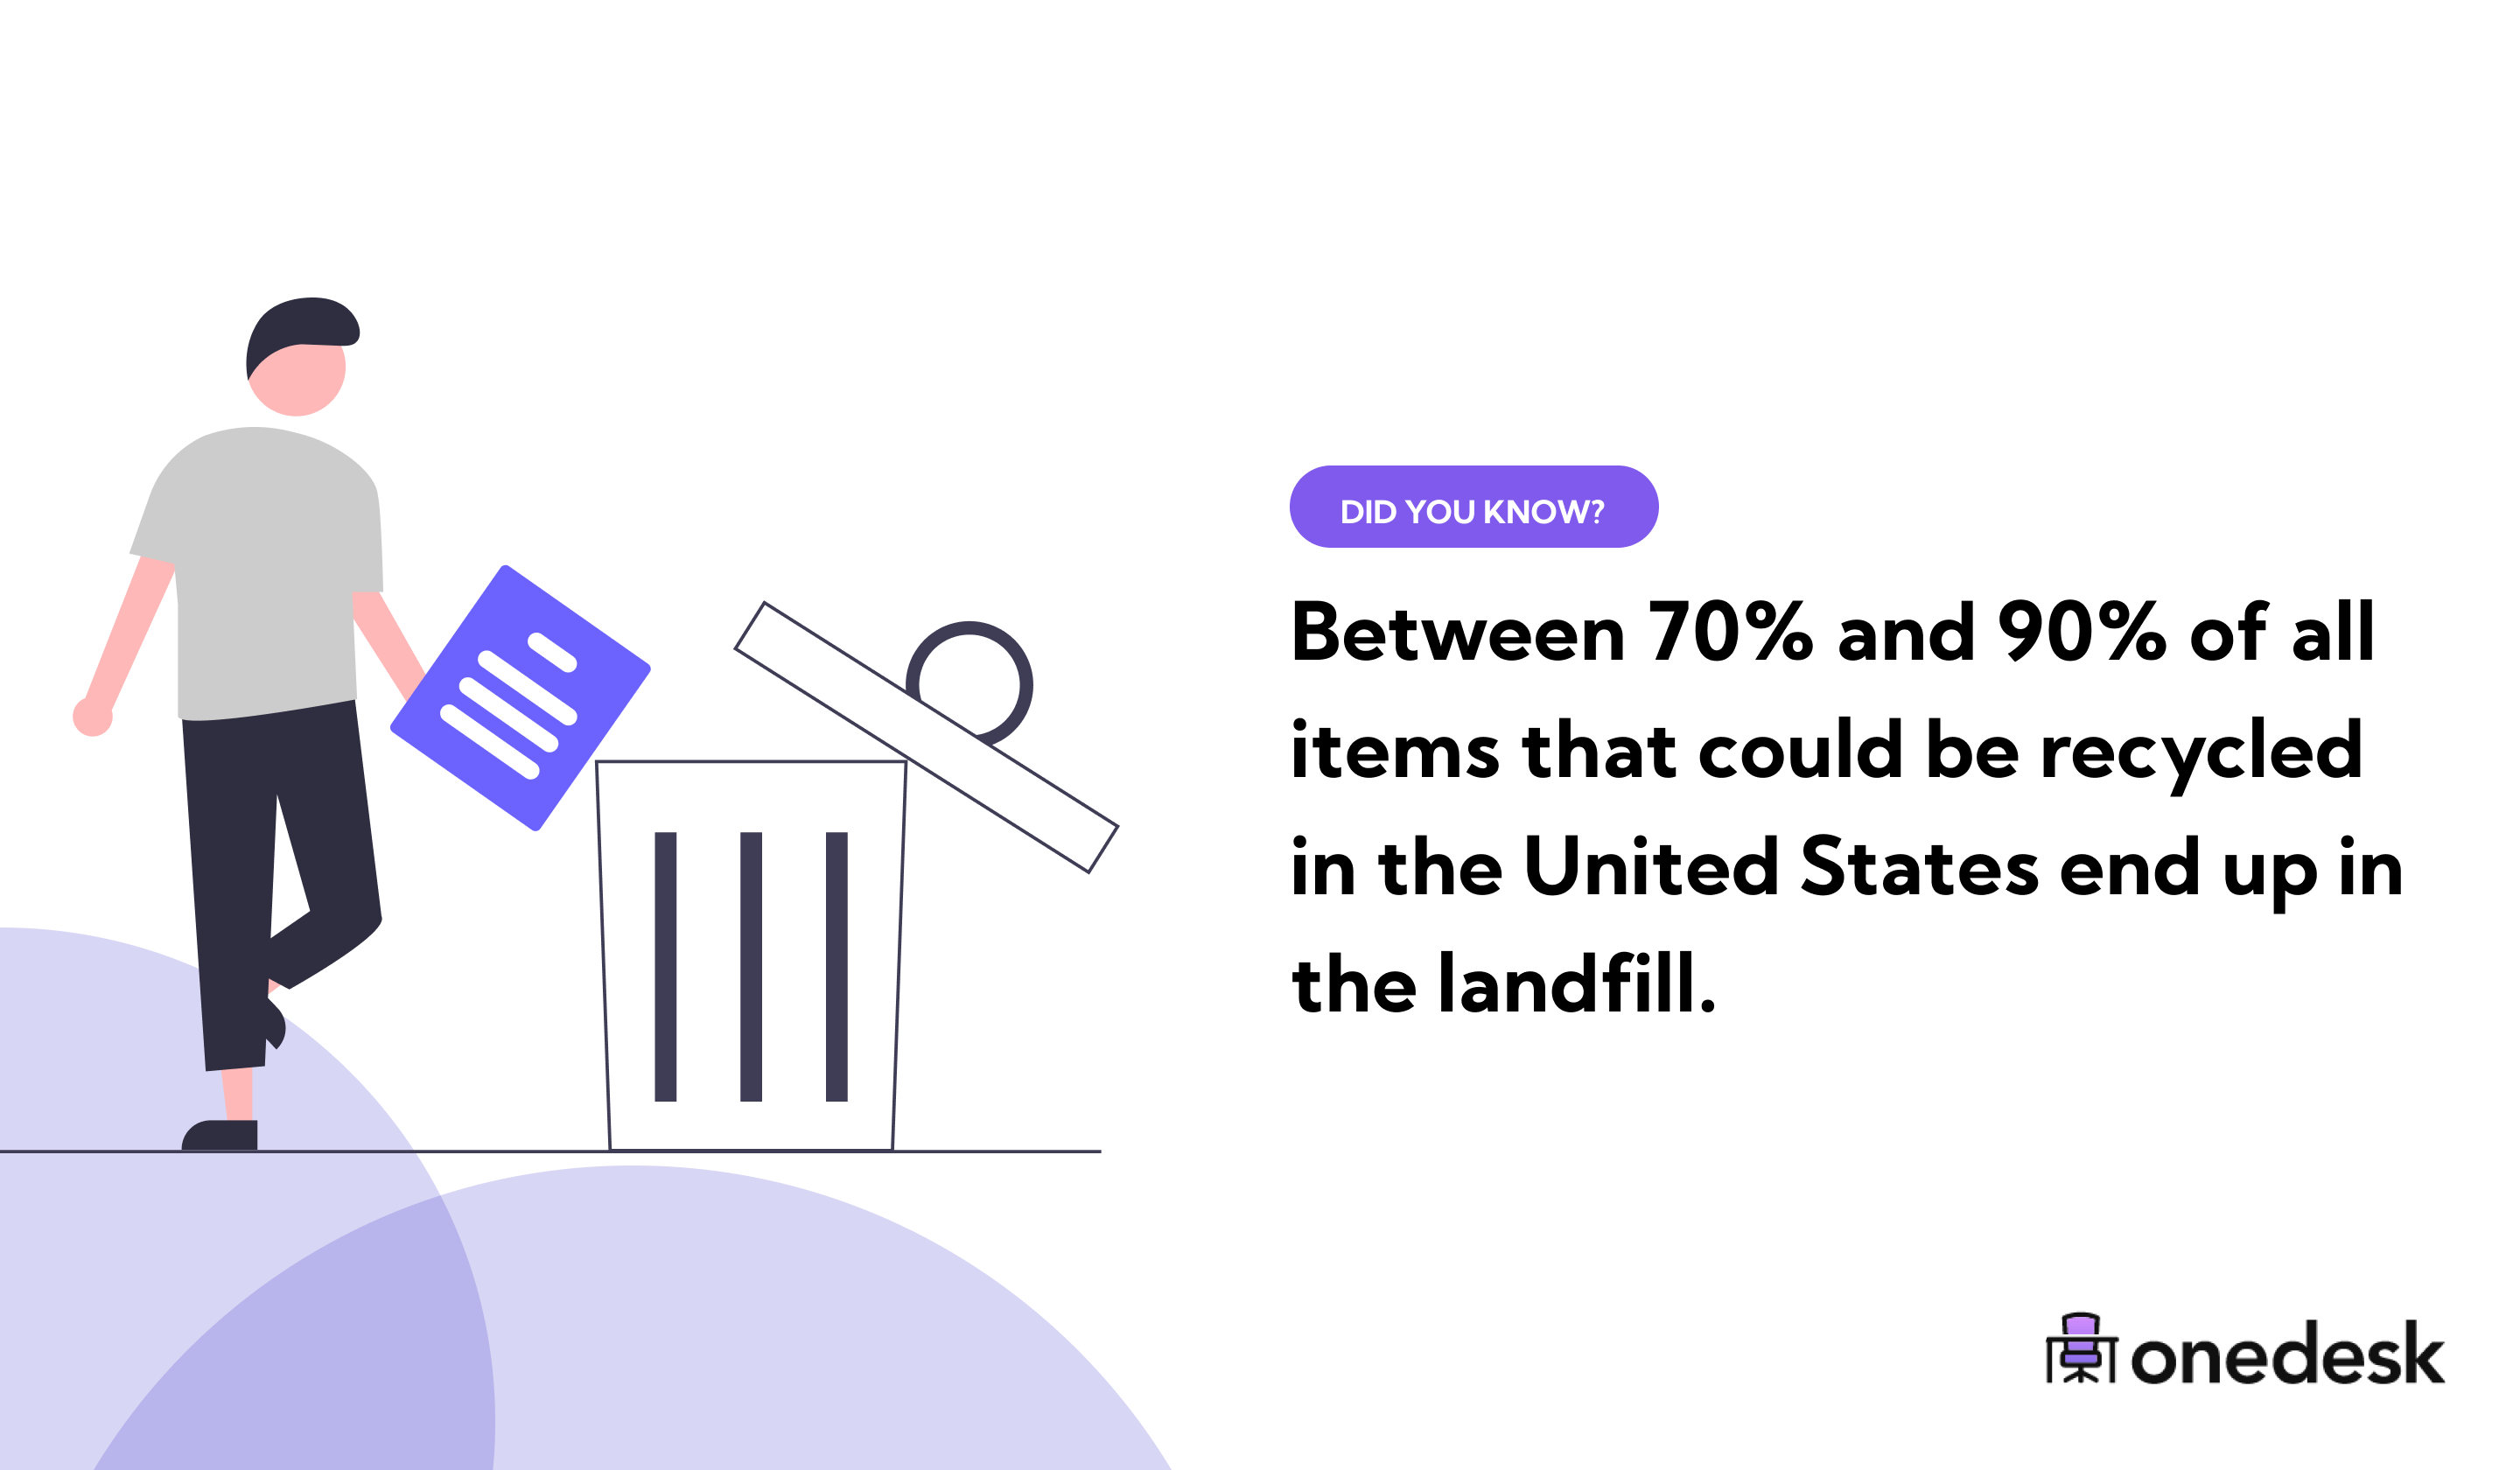 how many items in the usa end up in the landfill